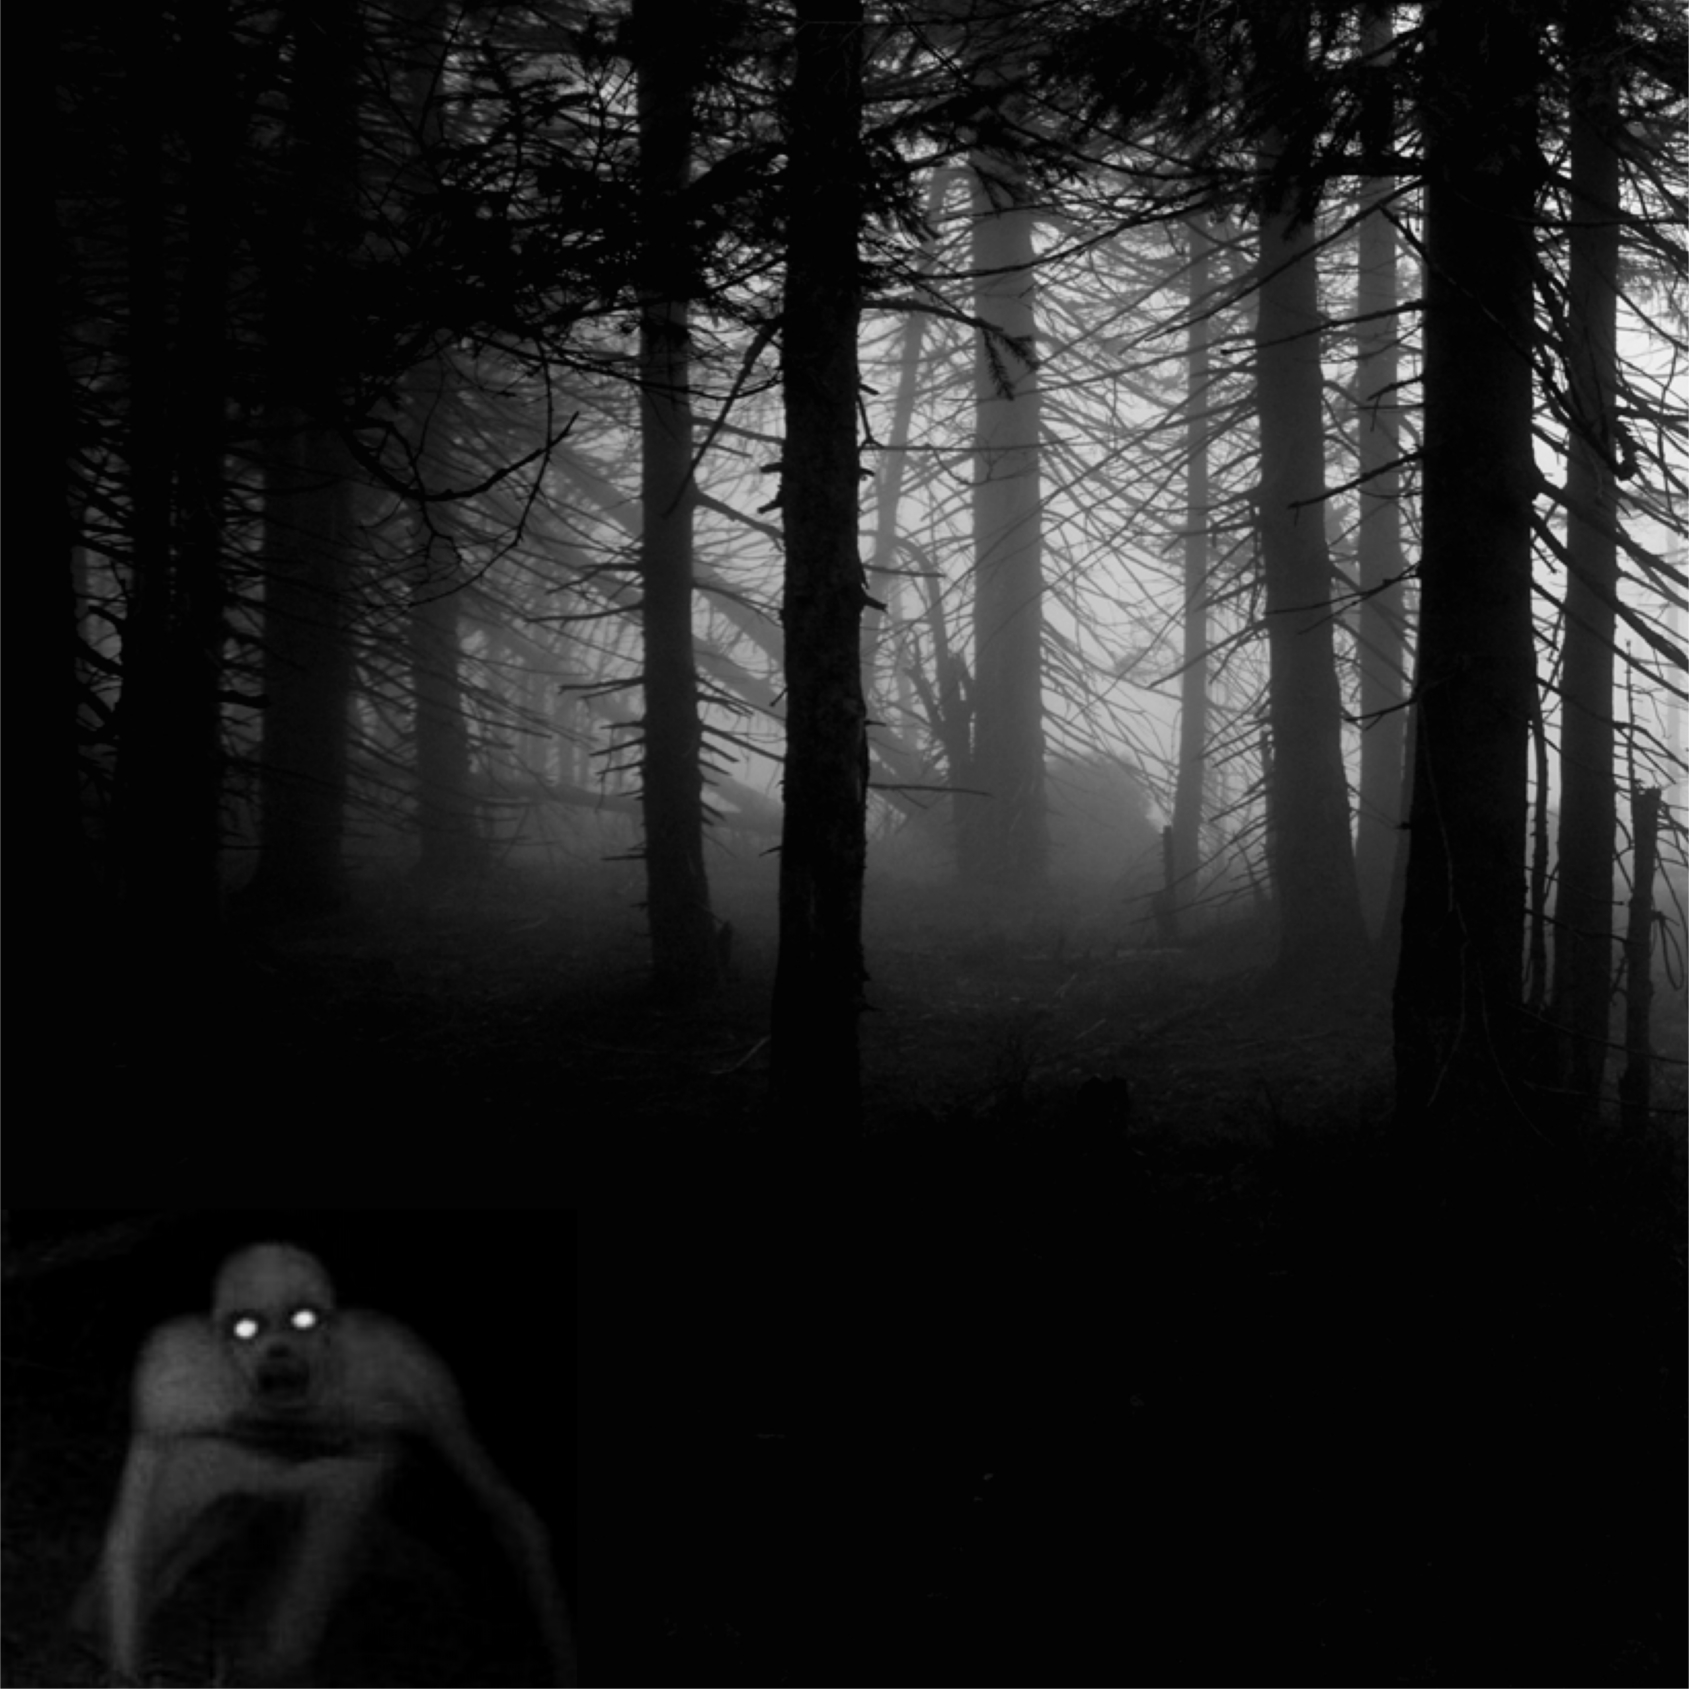 dark scary woods at night scary halloween stories creepy ghost stories for